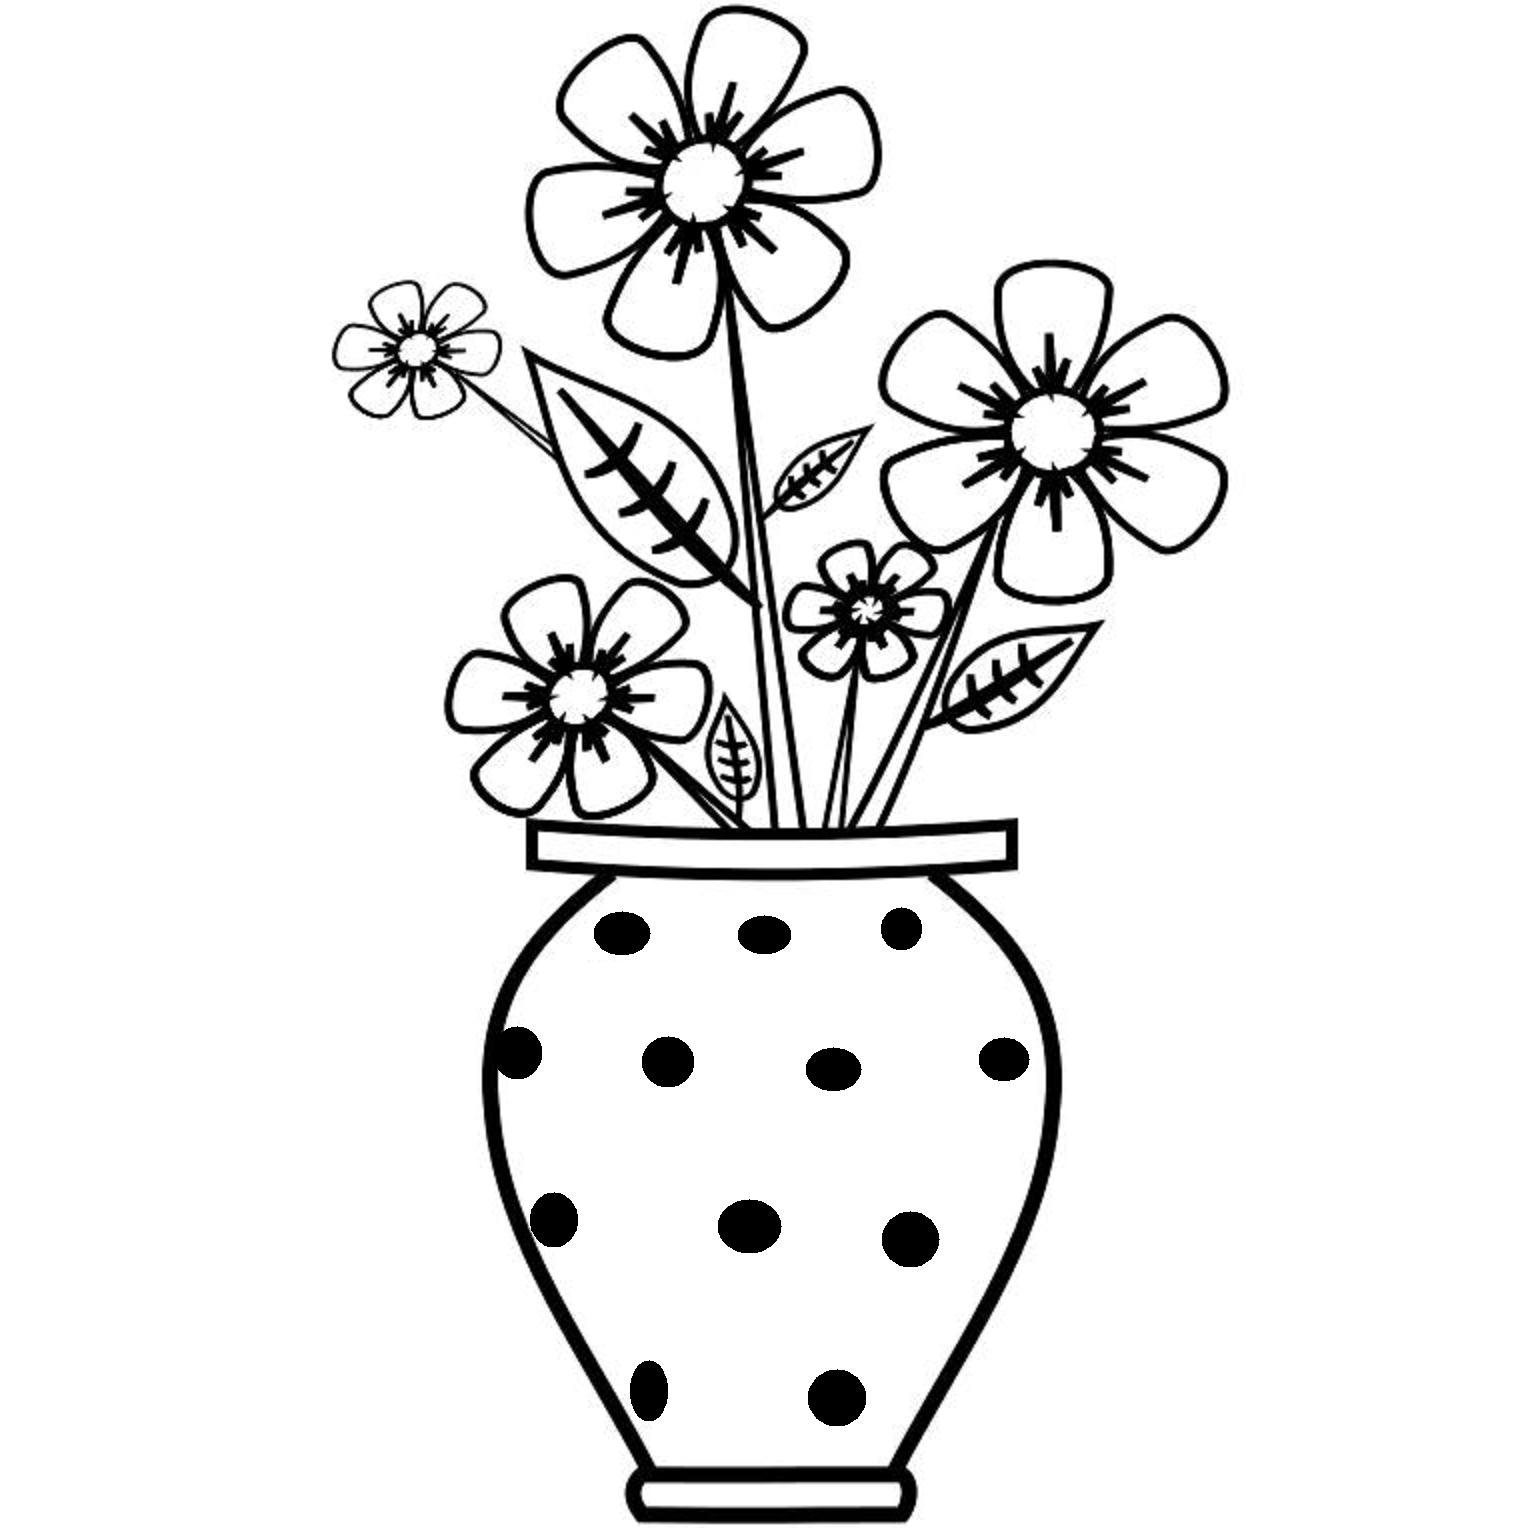 1532x1528 Flower Vase With Flowers Drawings For Kids